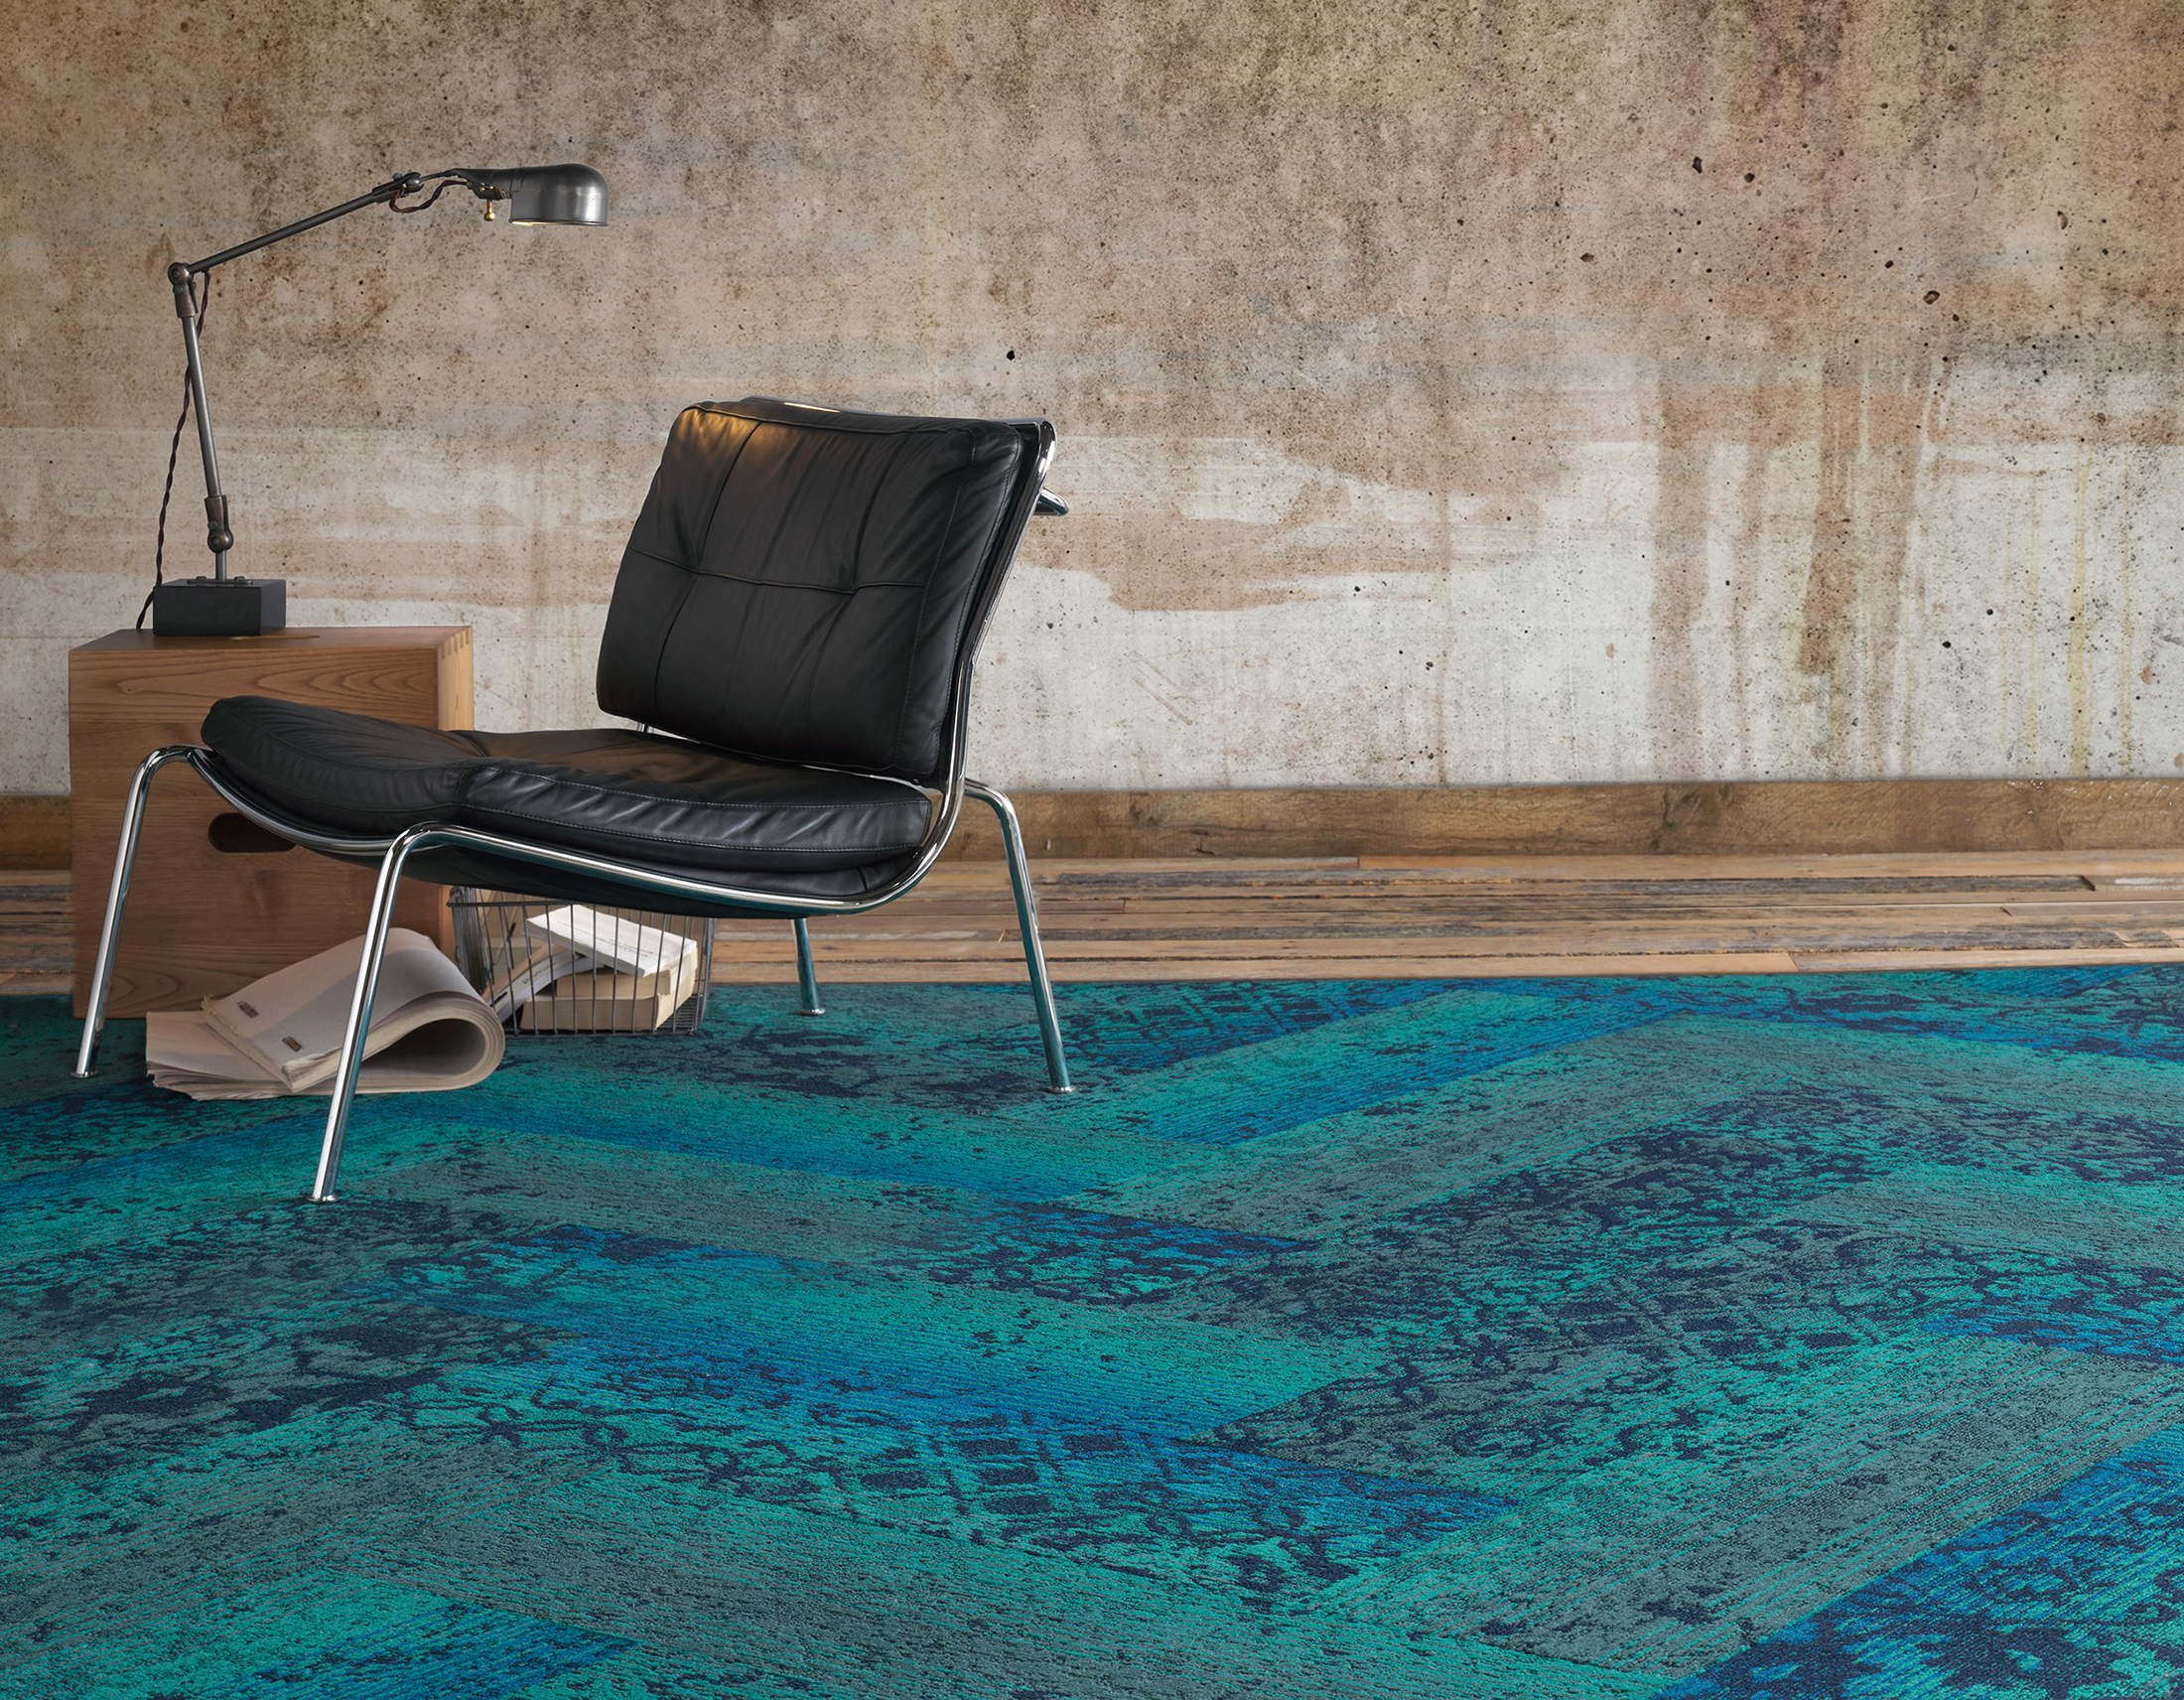 Mohawk groups topography carpet tile collection wins best of year mohawk group sets the standard as global flooring leader in transparent sustainability baanklon Images